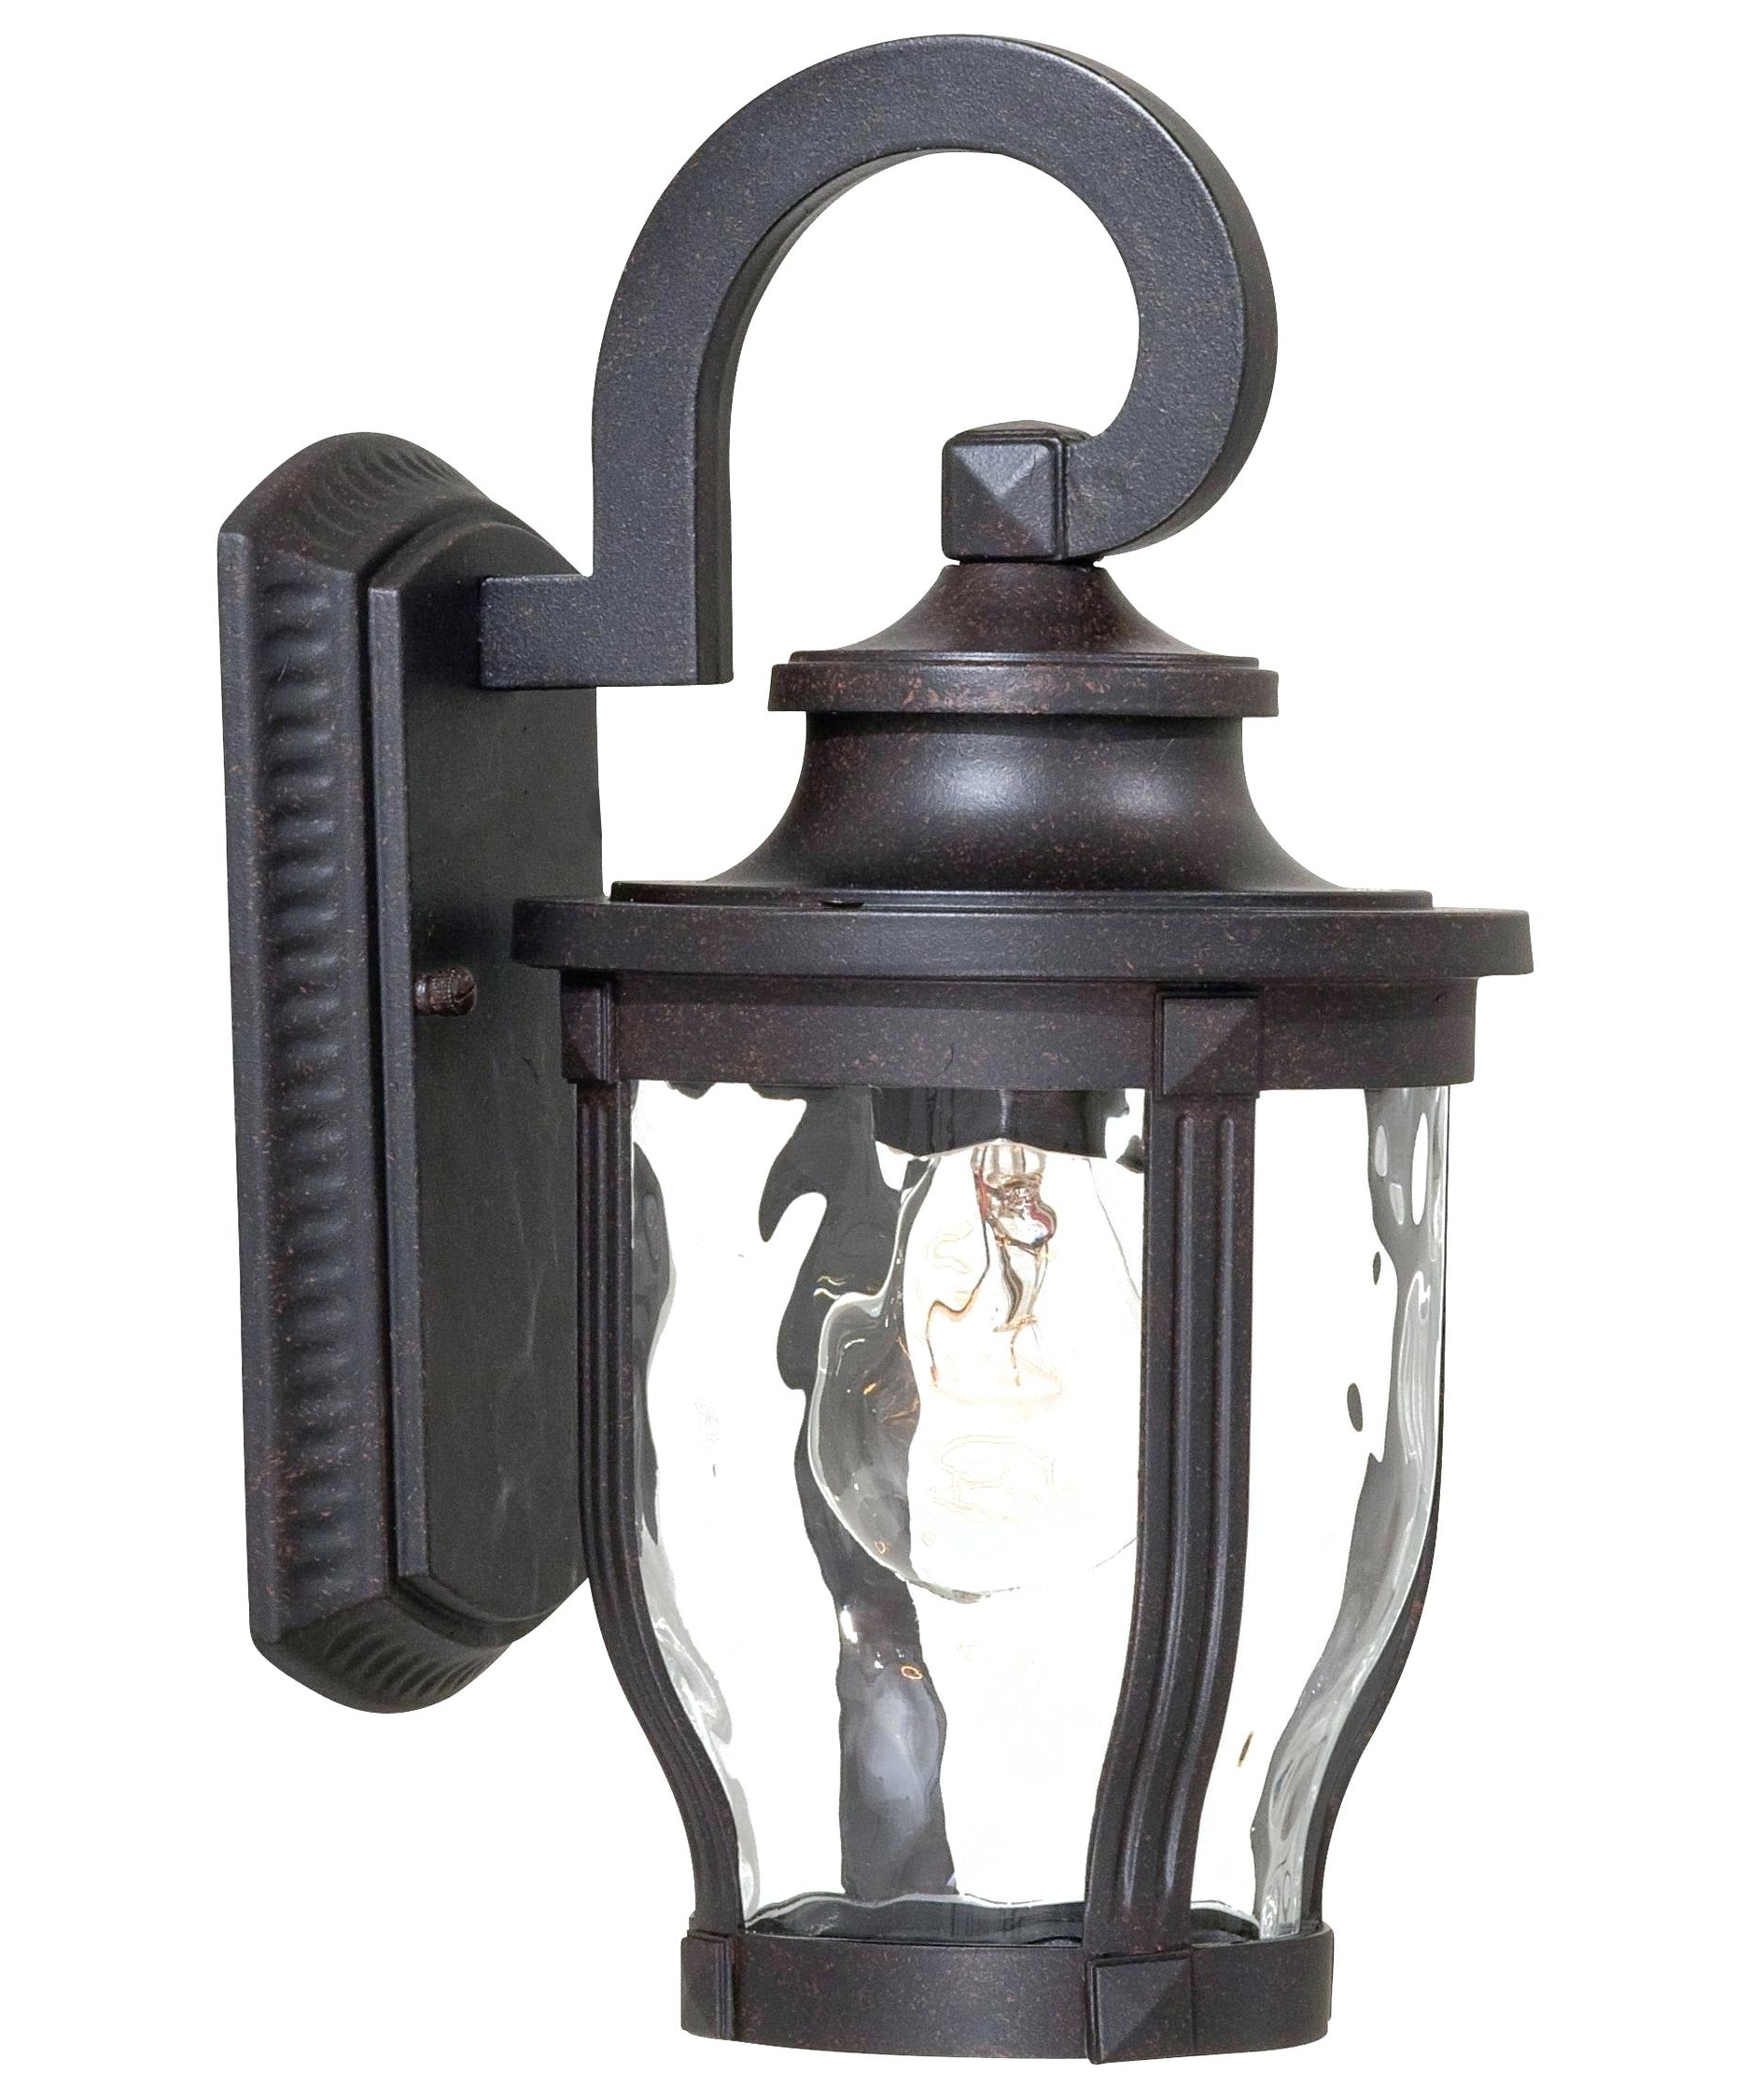 Outdoor Wall Lights With Gfci Outlet Regarding Well Known Interior (View 12 of 20)